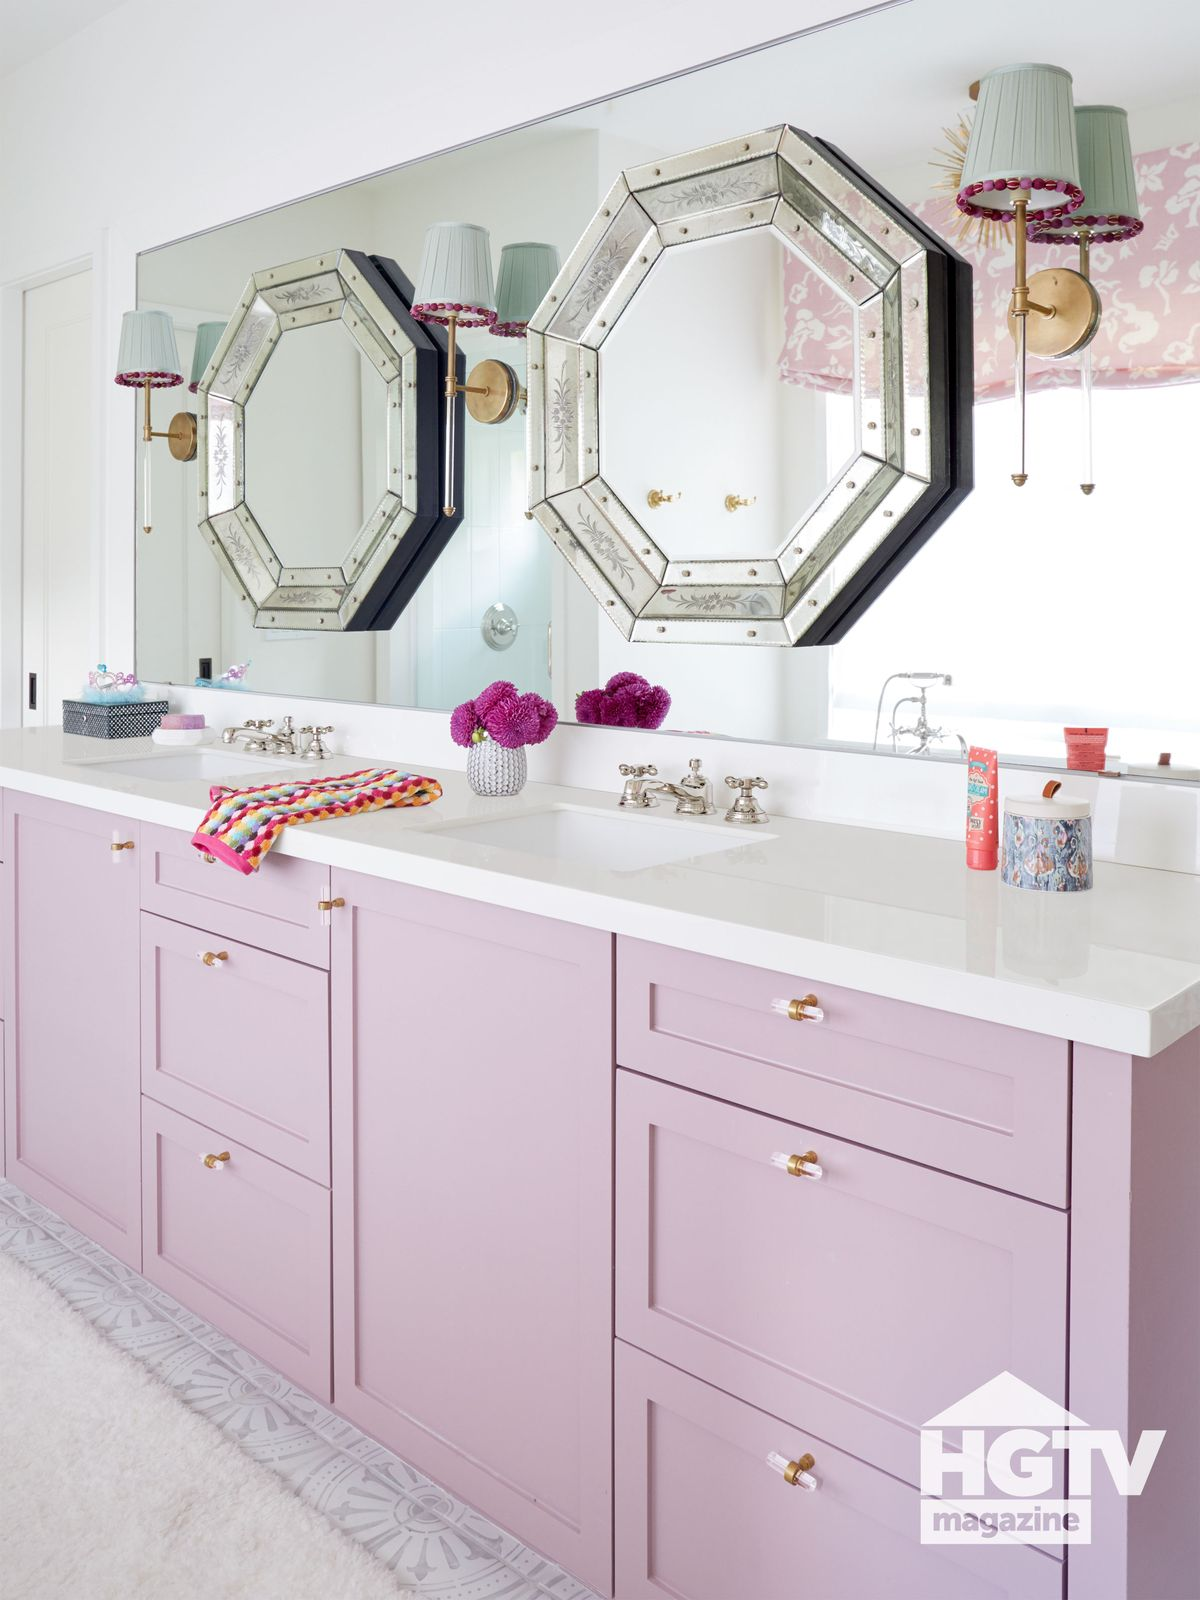 A purple and white girl's bathroom from HGTV Magazine